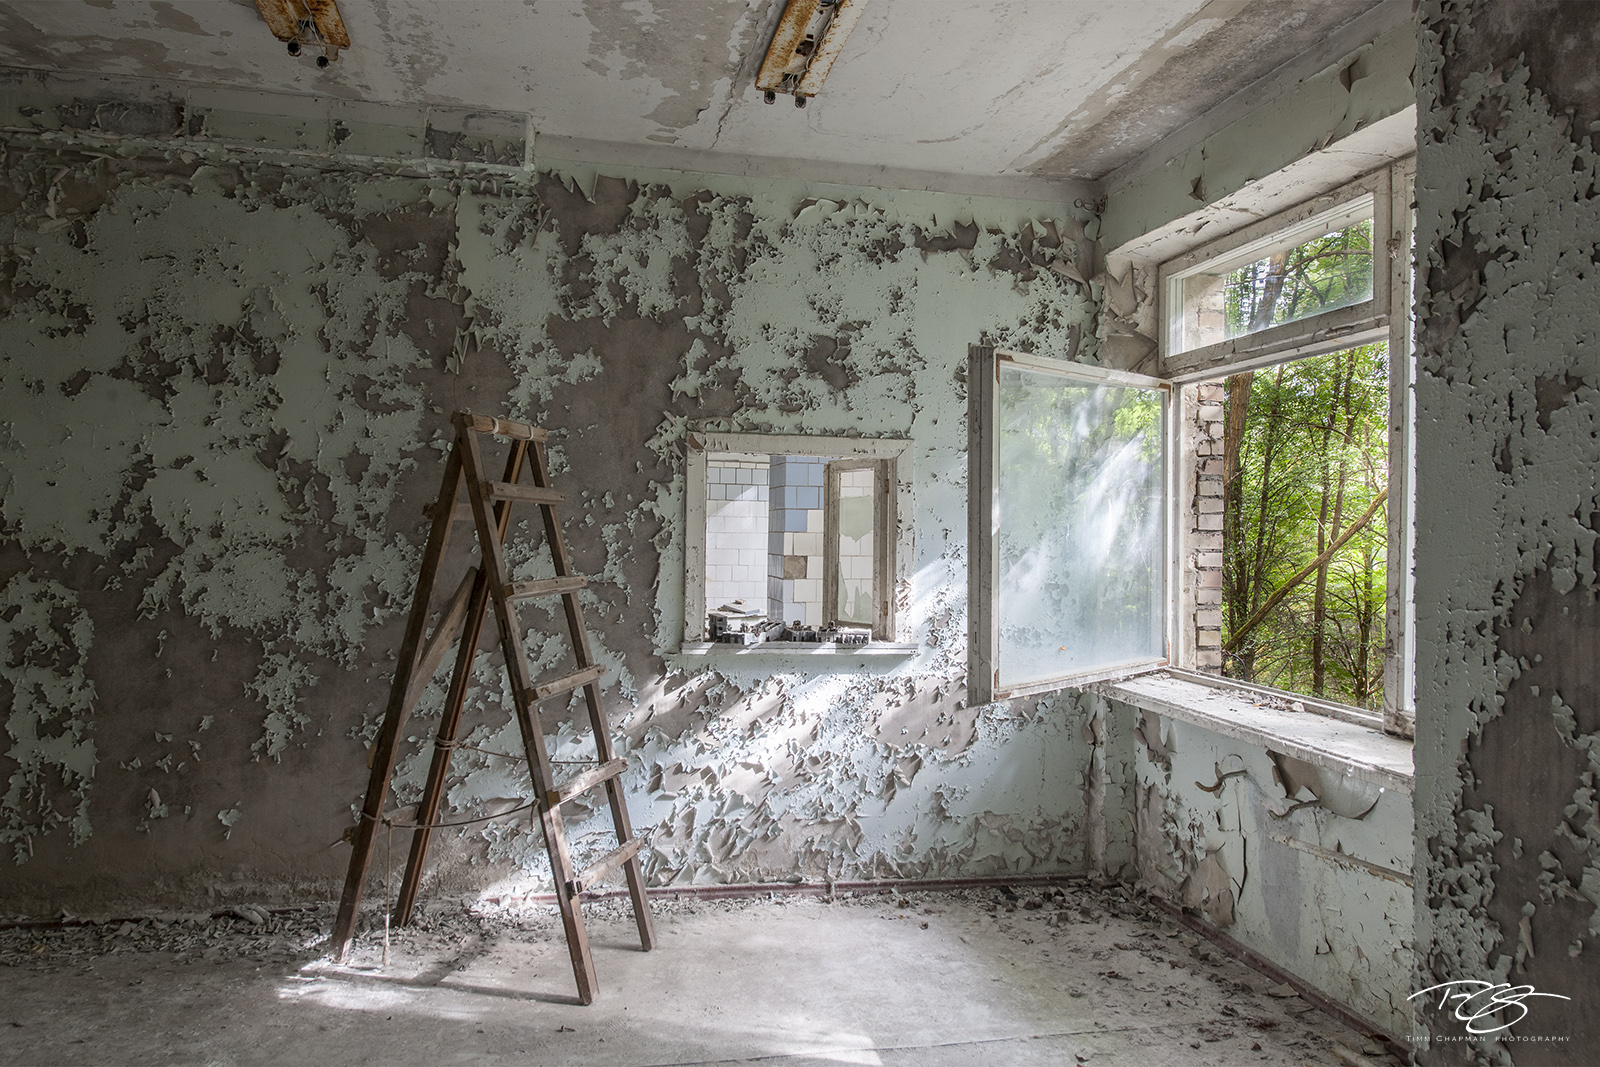 chernobyl, chornobyl, pripyat, exclusion zone, abandoned, forgotten, wasteland, radioactive, decay, peeling paint, hospital, ladder, window, renovation, fixer upper, home improvement, handyman special, photo